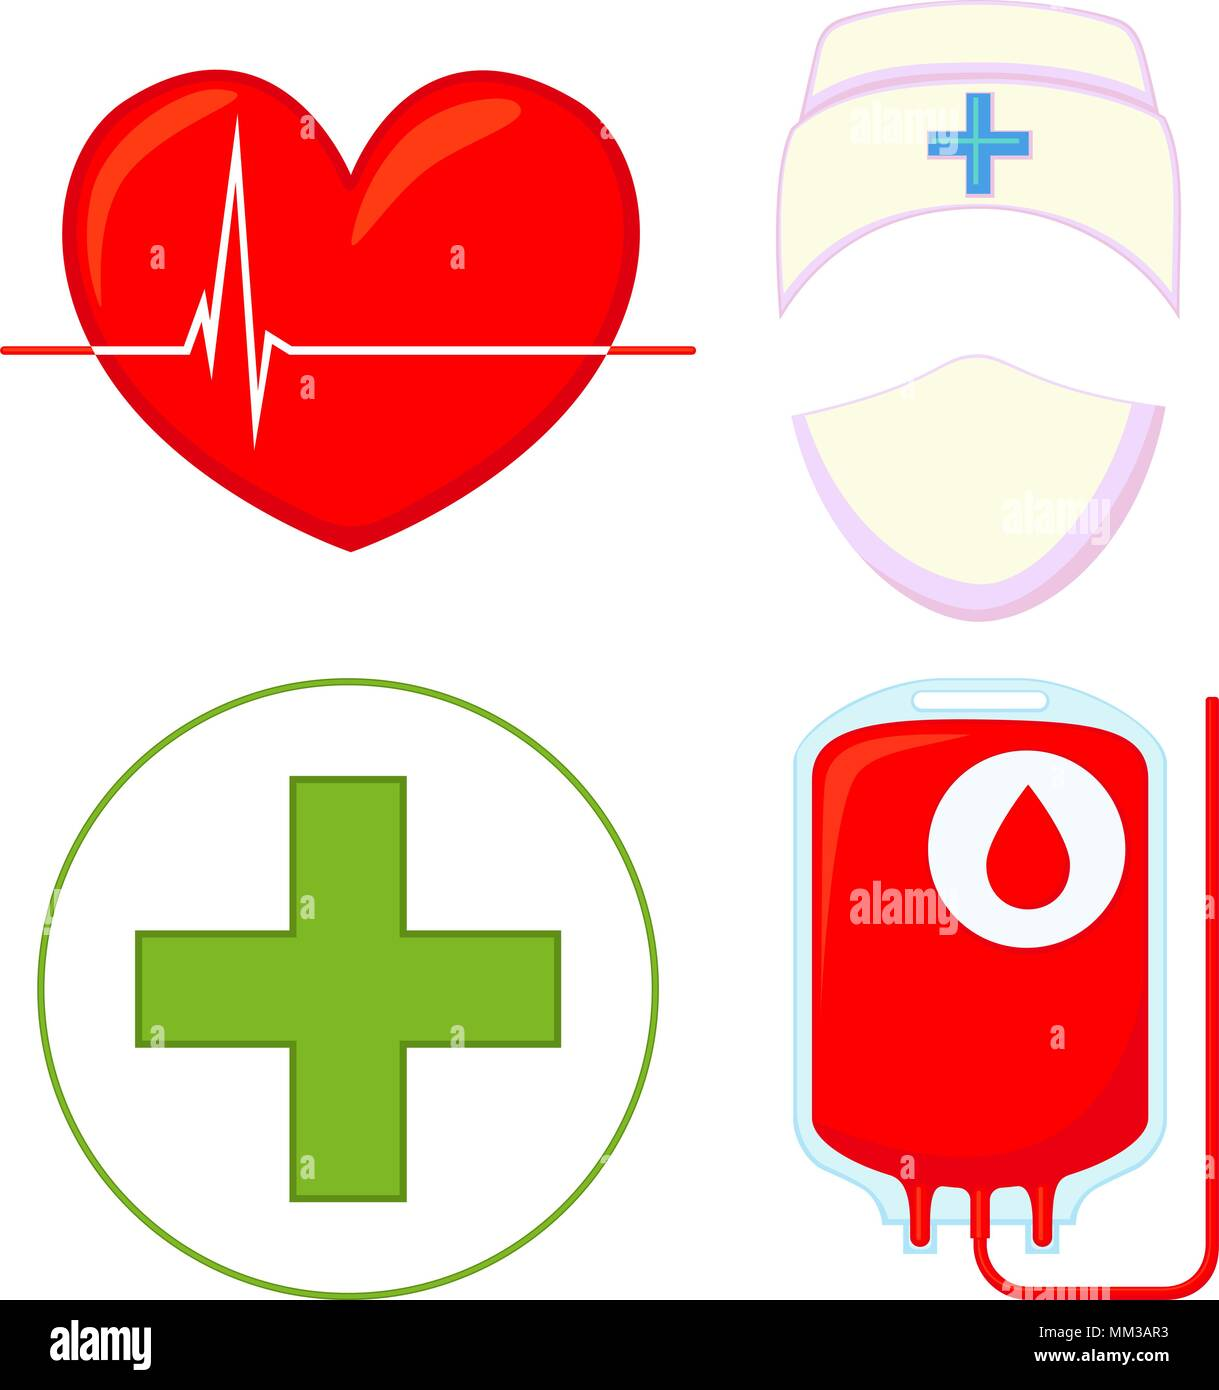 Colorful cartoon blood donation icon set isolated on white background. Heart cardiogram, IV bag, medical avatar and first aid kit. Healthcare vector i - Stock Vector